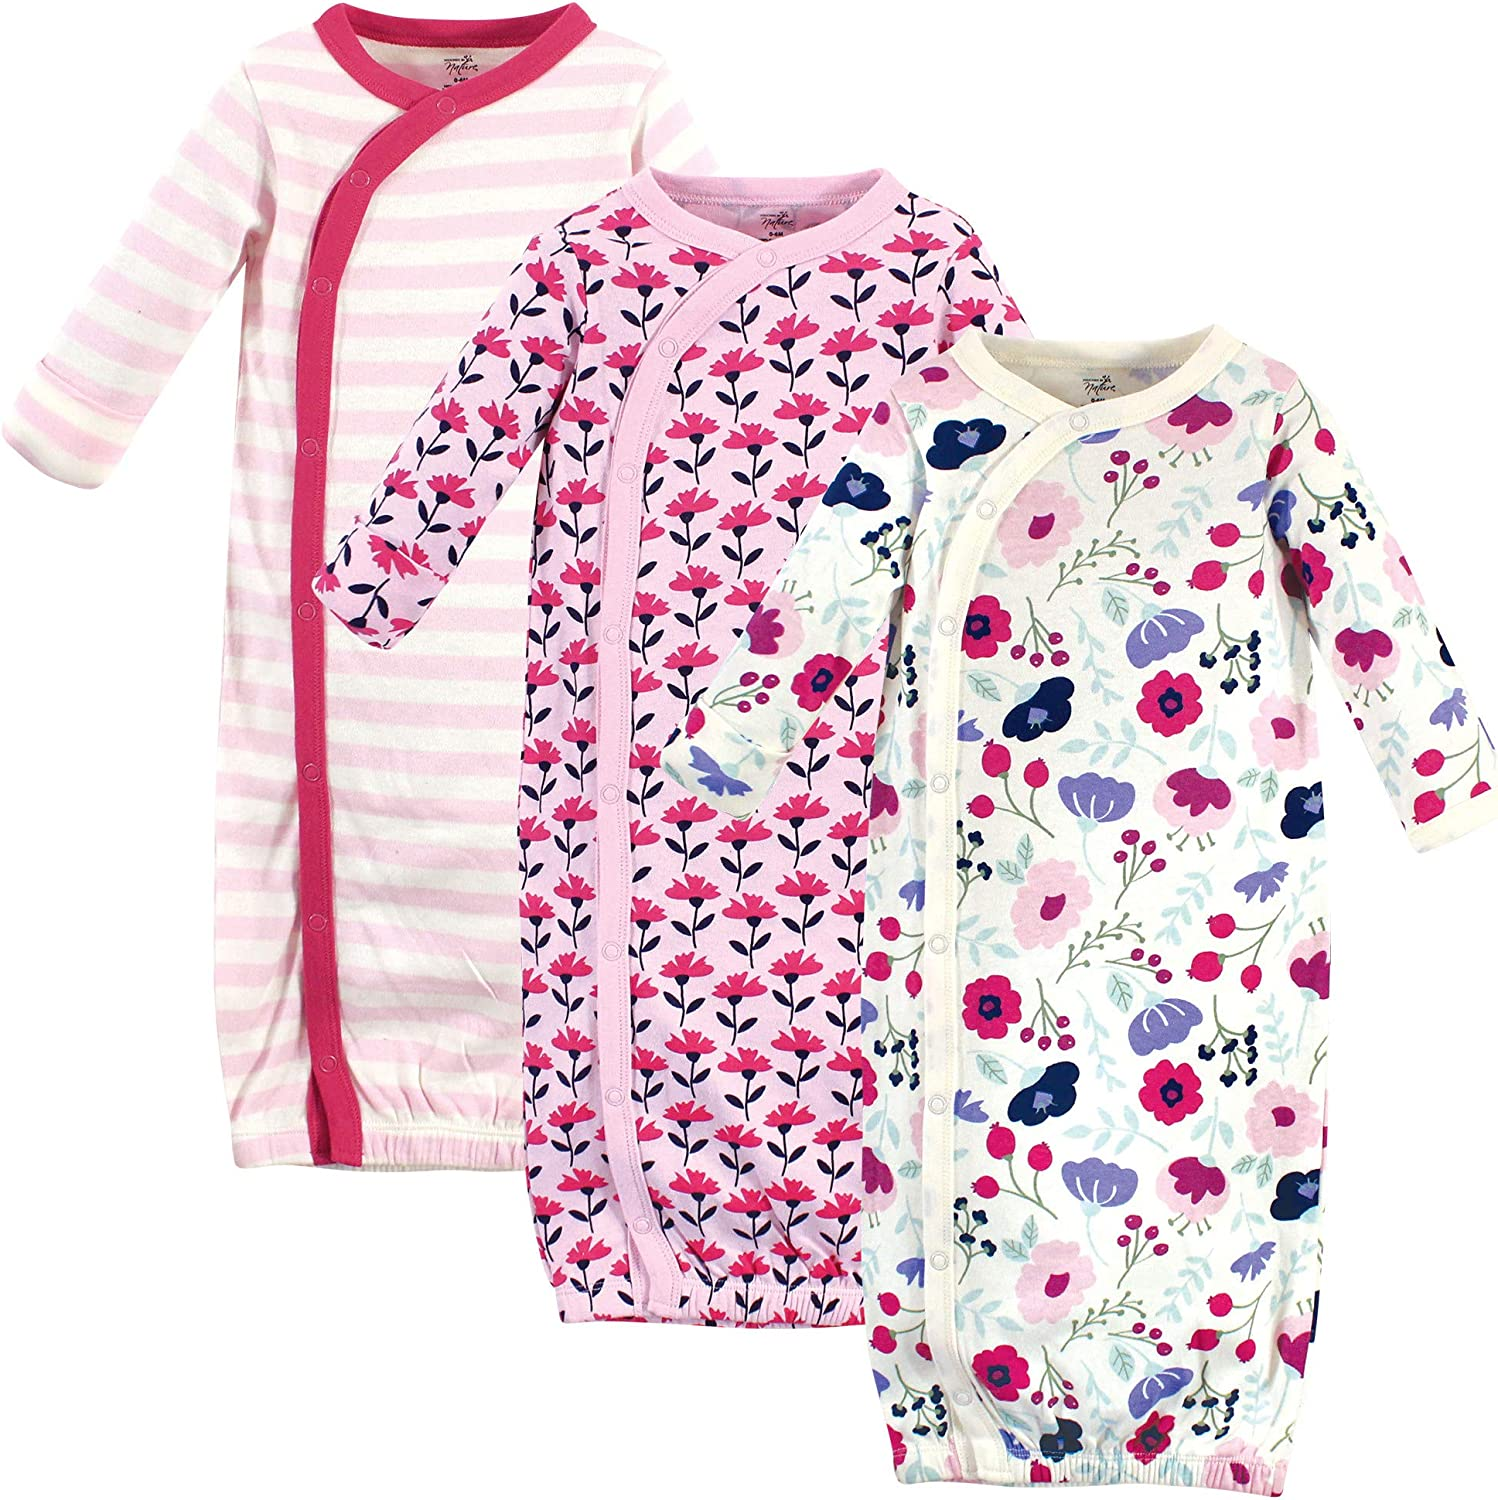 Pink Botanical Touched by Nature Baby Organic Cotton Kimono Gowns 3pk